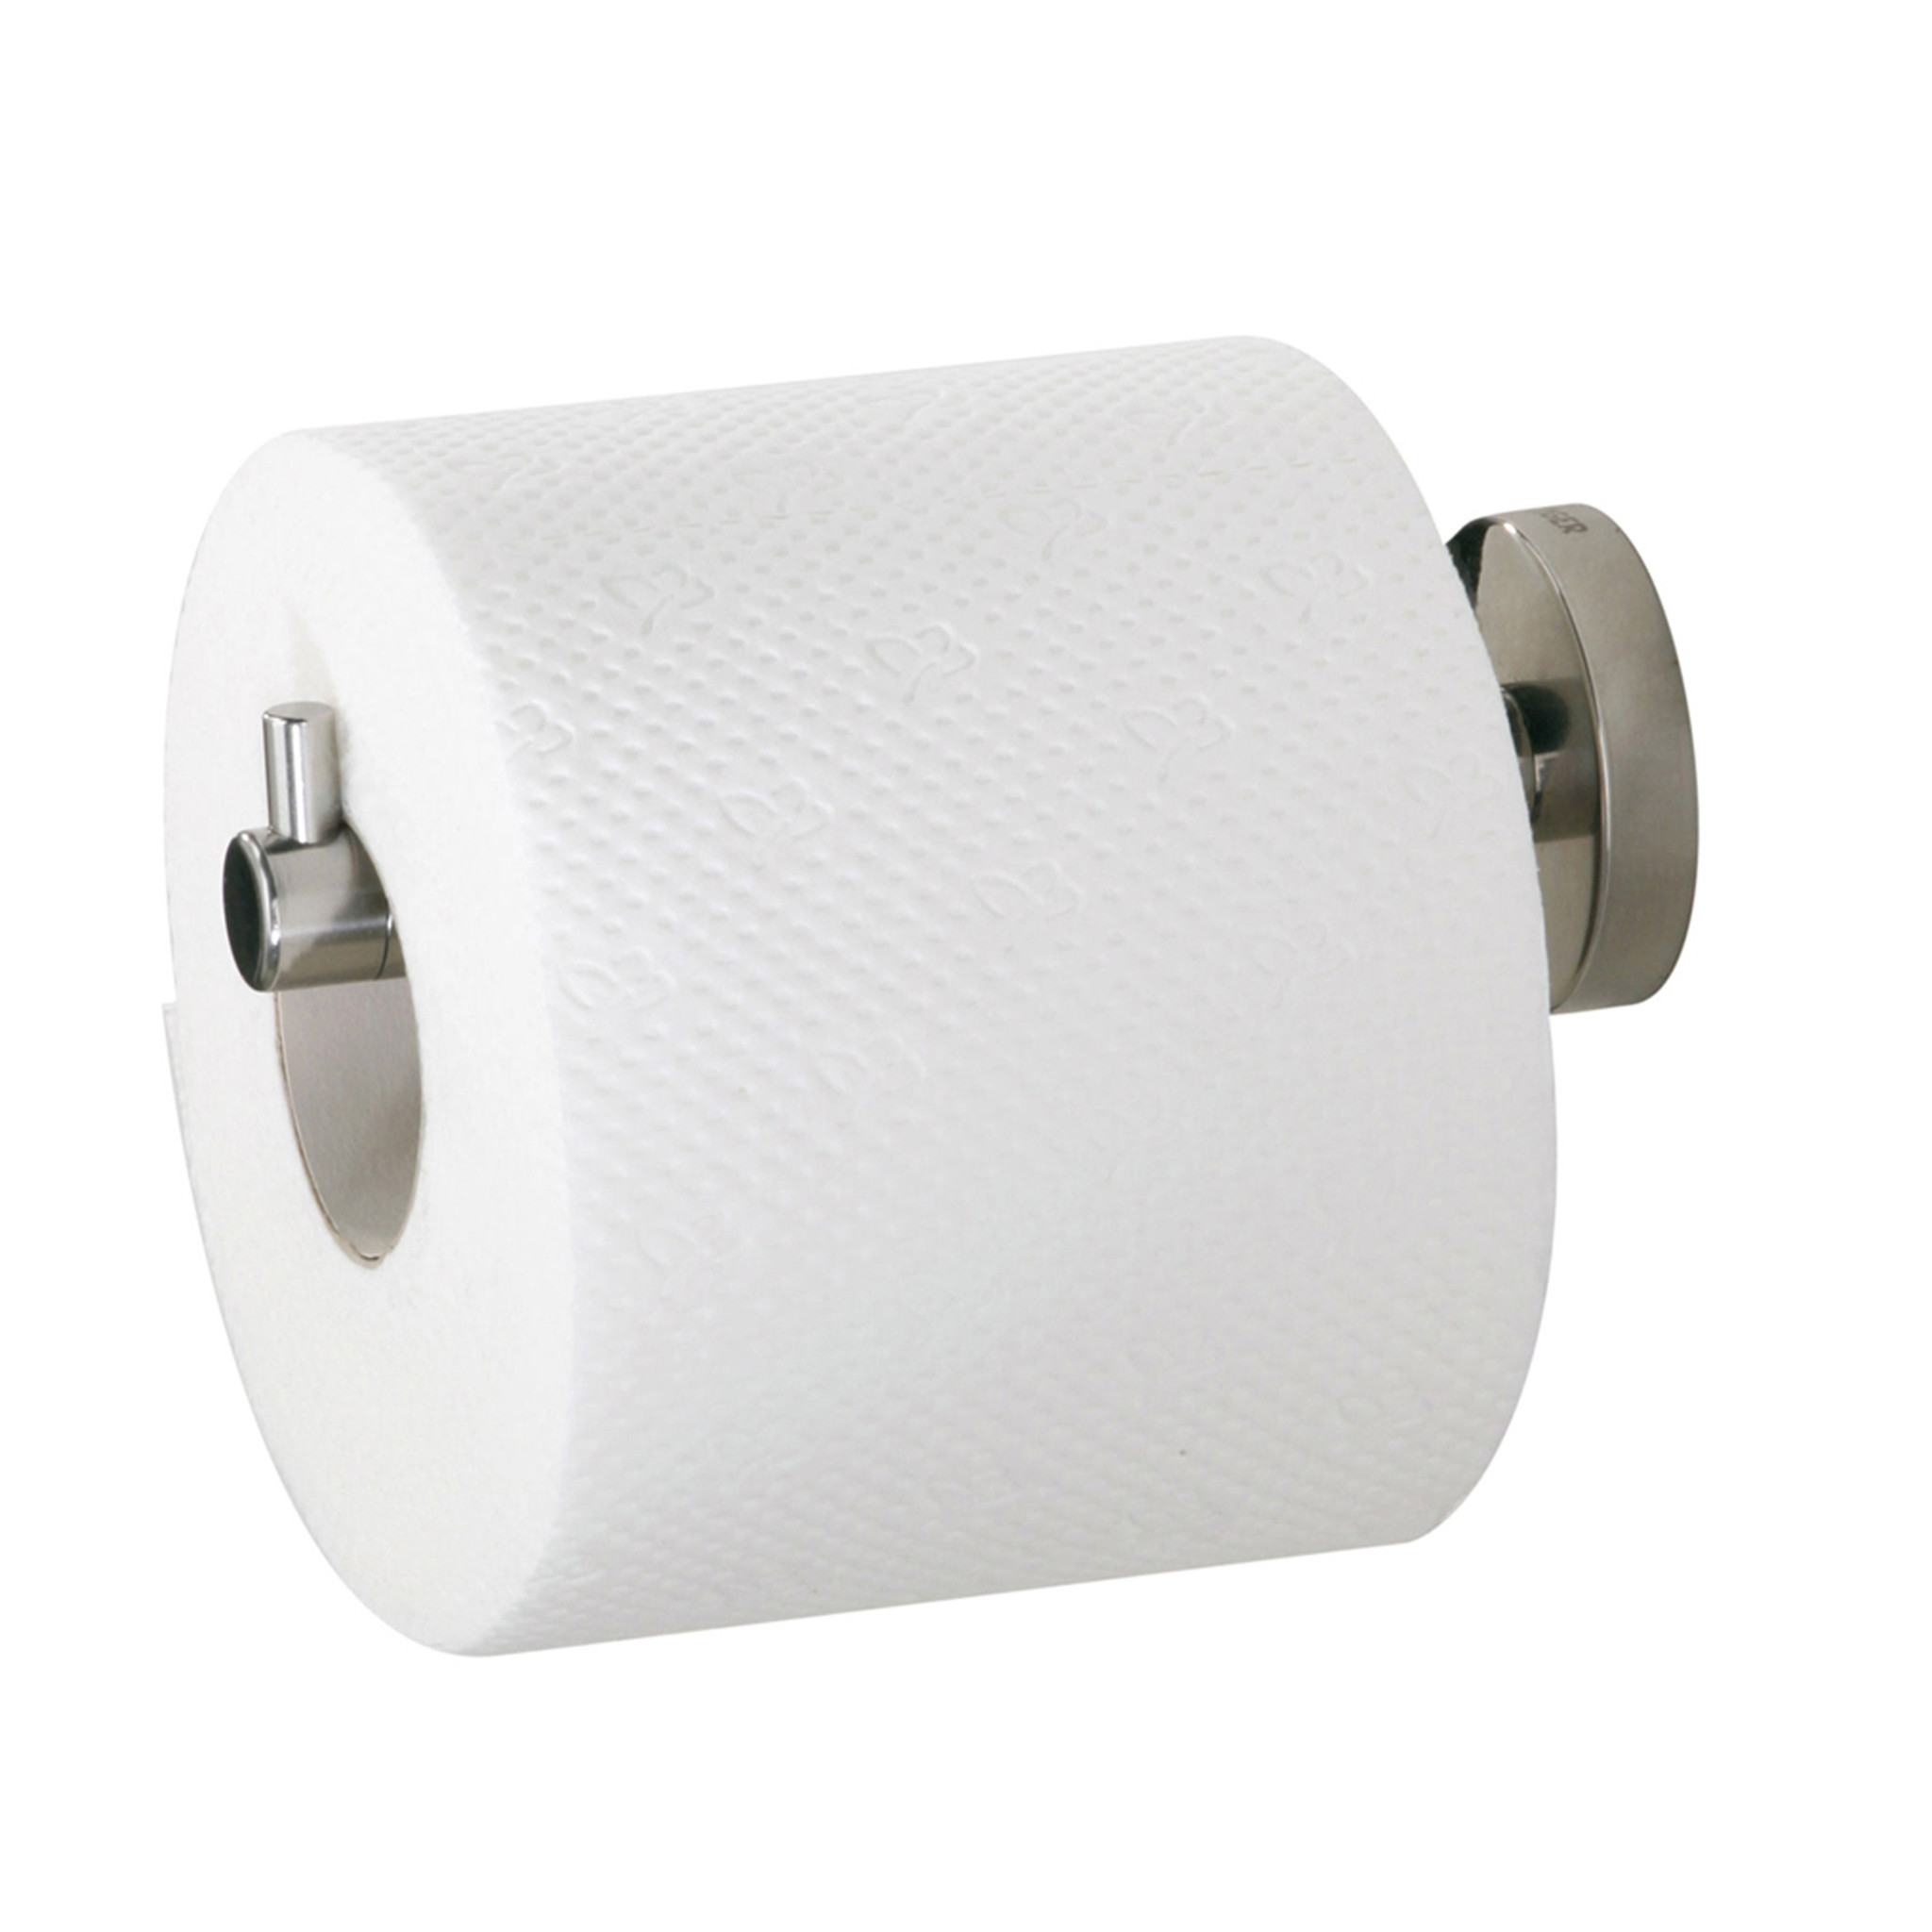 Tiger Wc Rolhouder.Tiger Boston Spare Toilet Roll Holder Stainless Steel